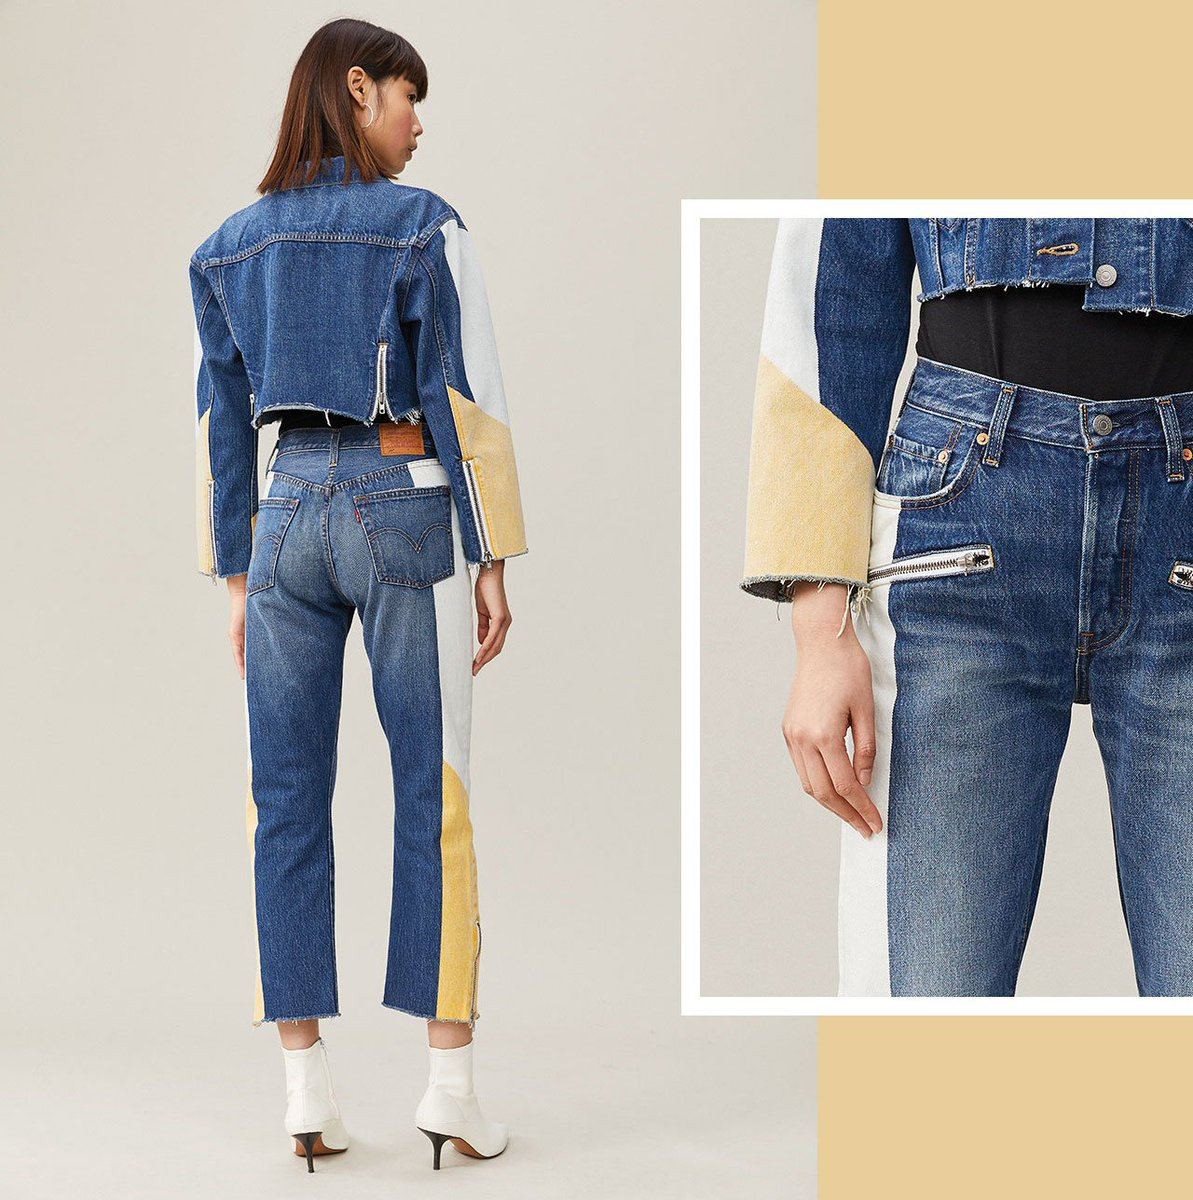 Modern designs. '90s silhouettes. Flashy embellishments. New moto-inspired looks turn some of our most iconic pieces on their heads. Let's go Moto. http://bit.ly/2Th6vz3